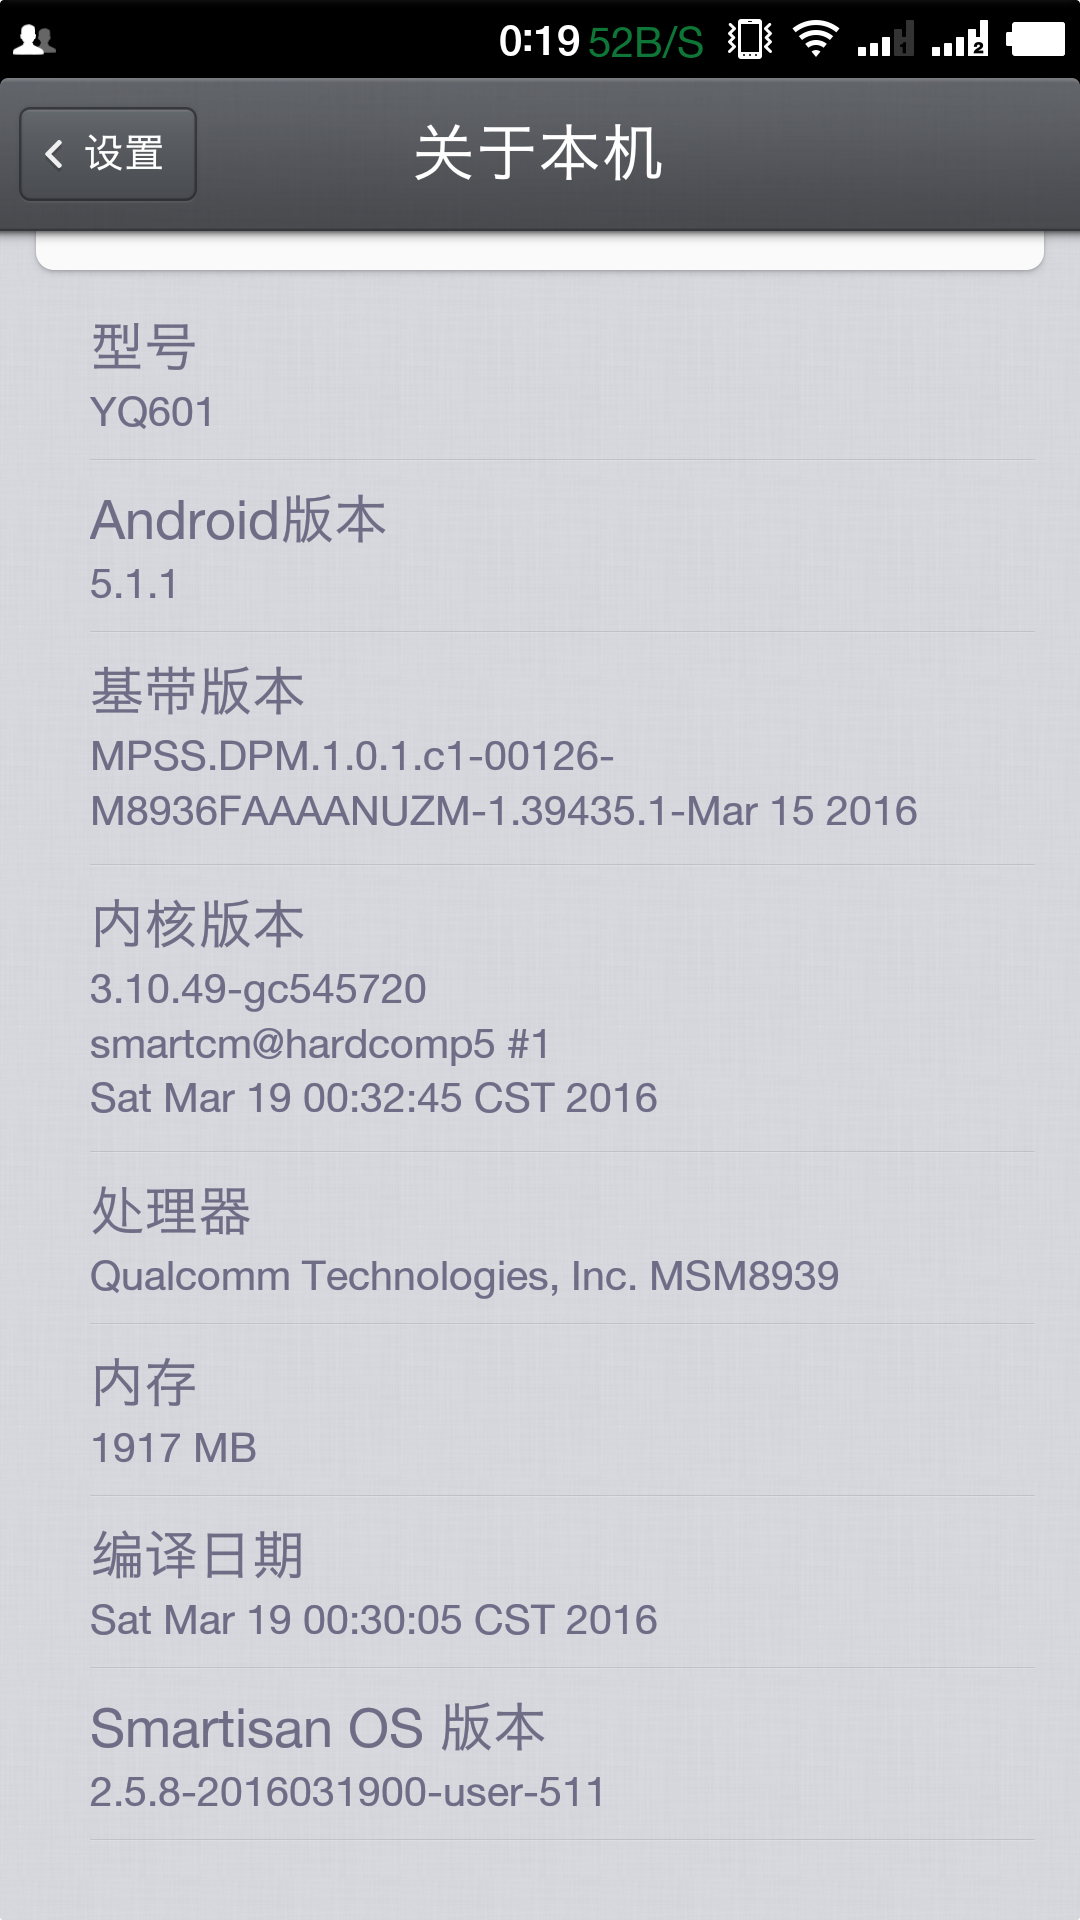 Screenshot_2016-03-27-00-19-24-810_设置.png